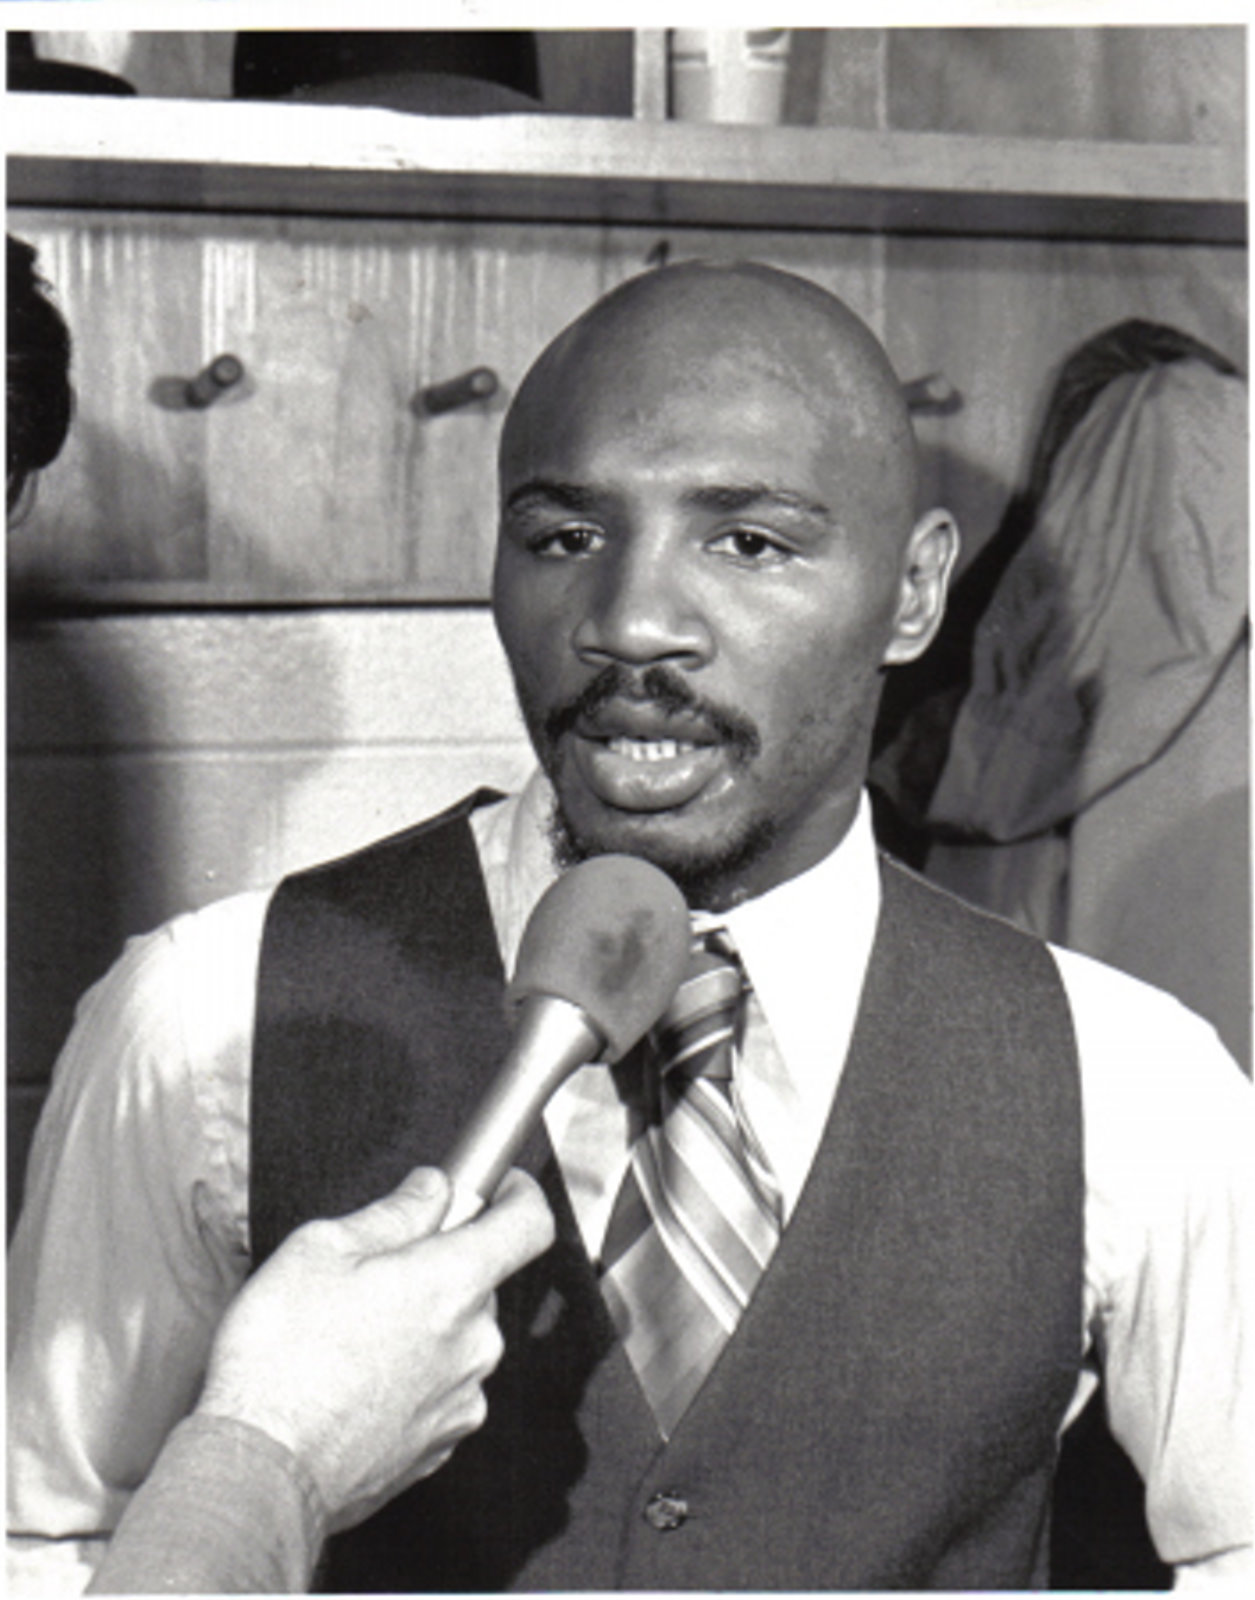 Marvelous Marvin Hagler stock photo 8x10 B&W